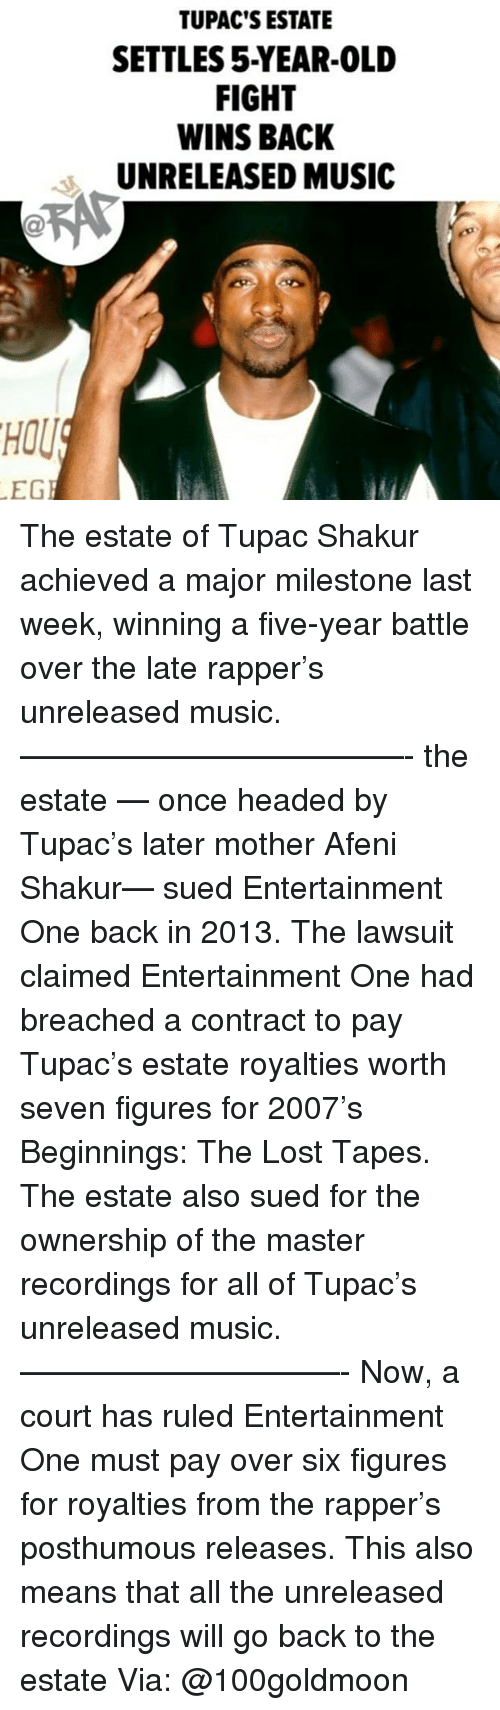 Memes, Music, and Tupac Shakur: TUPAC'S ESTATE  SETTLES 5-YEAR-0OLD  FIGHT  WINS BACK  UNRELEASED MUSIC  HOU  EG The estate of Tupac Shakur achieved a major milestone last week, winning a five-year battle over the late rapper's unreleased music. ————————————- the estate — once headed by Tupac's later mother Afeni Shakur— sued Entertainment One back in 2013. The lawsuit claimed Entertainment One had breached a contract to pay Tupac's estate royalties worth seven figures for 2007's Beginnings: The Lost Tapes. The estate also sued for the ownership of the master recordings for all of Tupac's unreleased music. ——————————- Now, a court has ruled Entertainment One must pay over six figures for royalties from the rapper's posthumous releases. This also means that all the unreleased recordings will go back to the estate Via: @100goldmoon